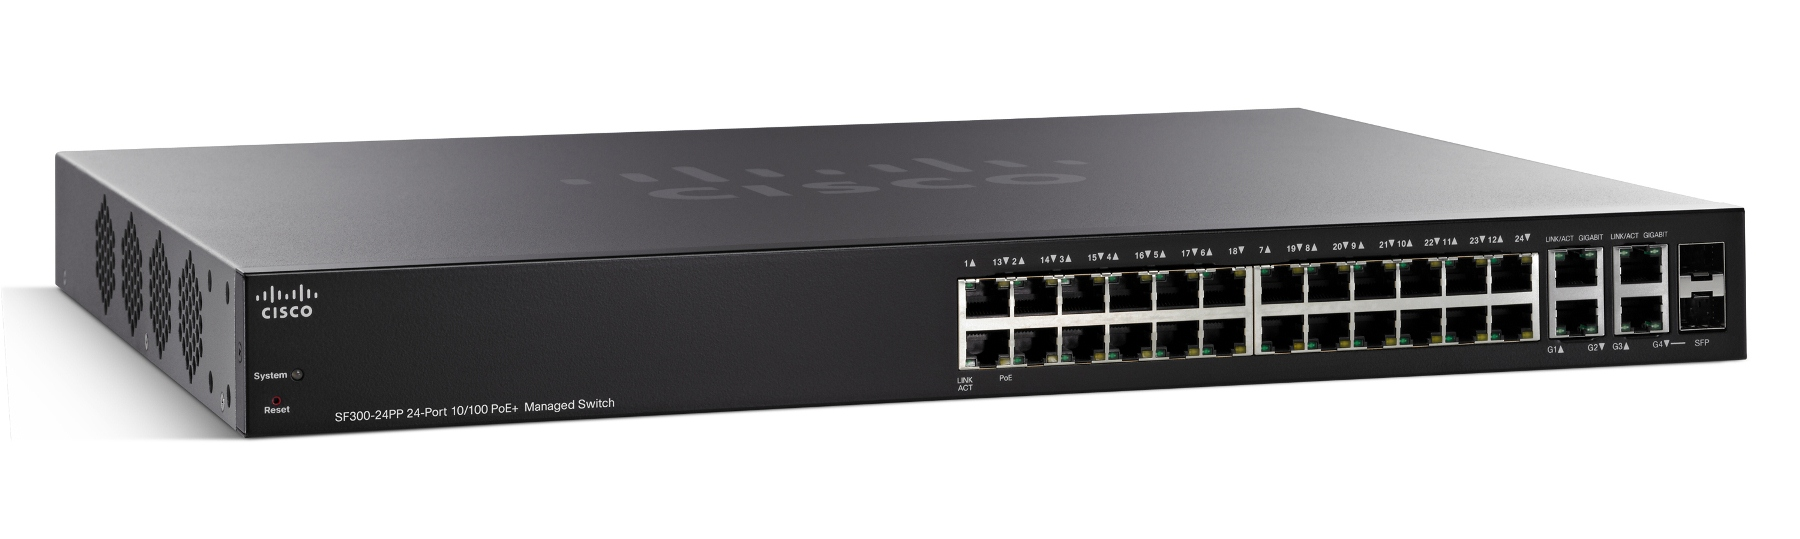 Cisco SF300-24PP 24x 10/100 PoE+ Managed Switch